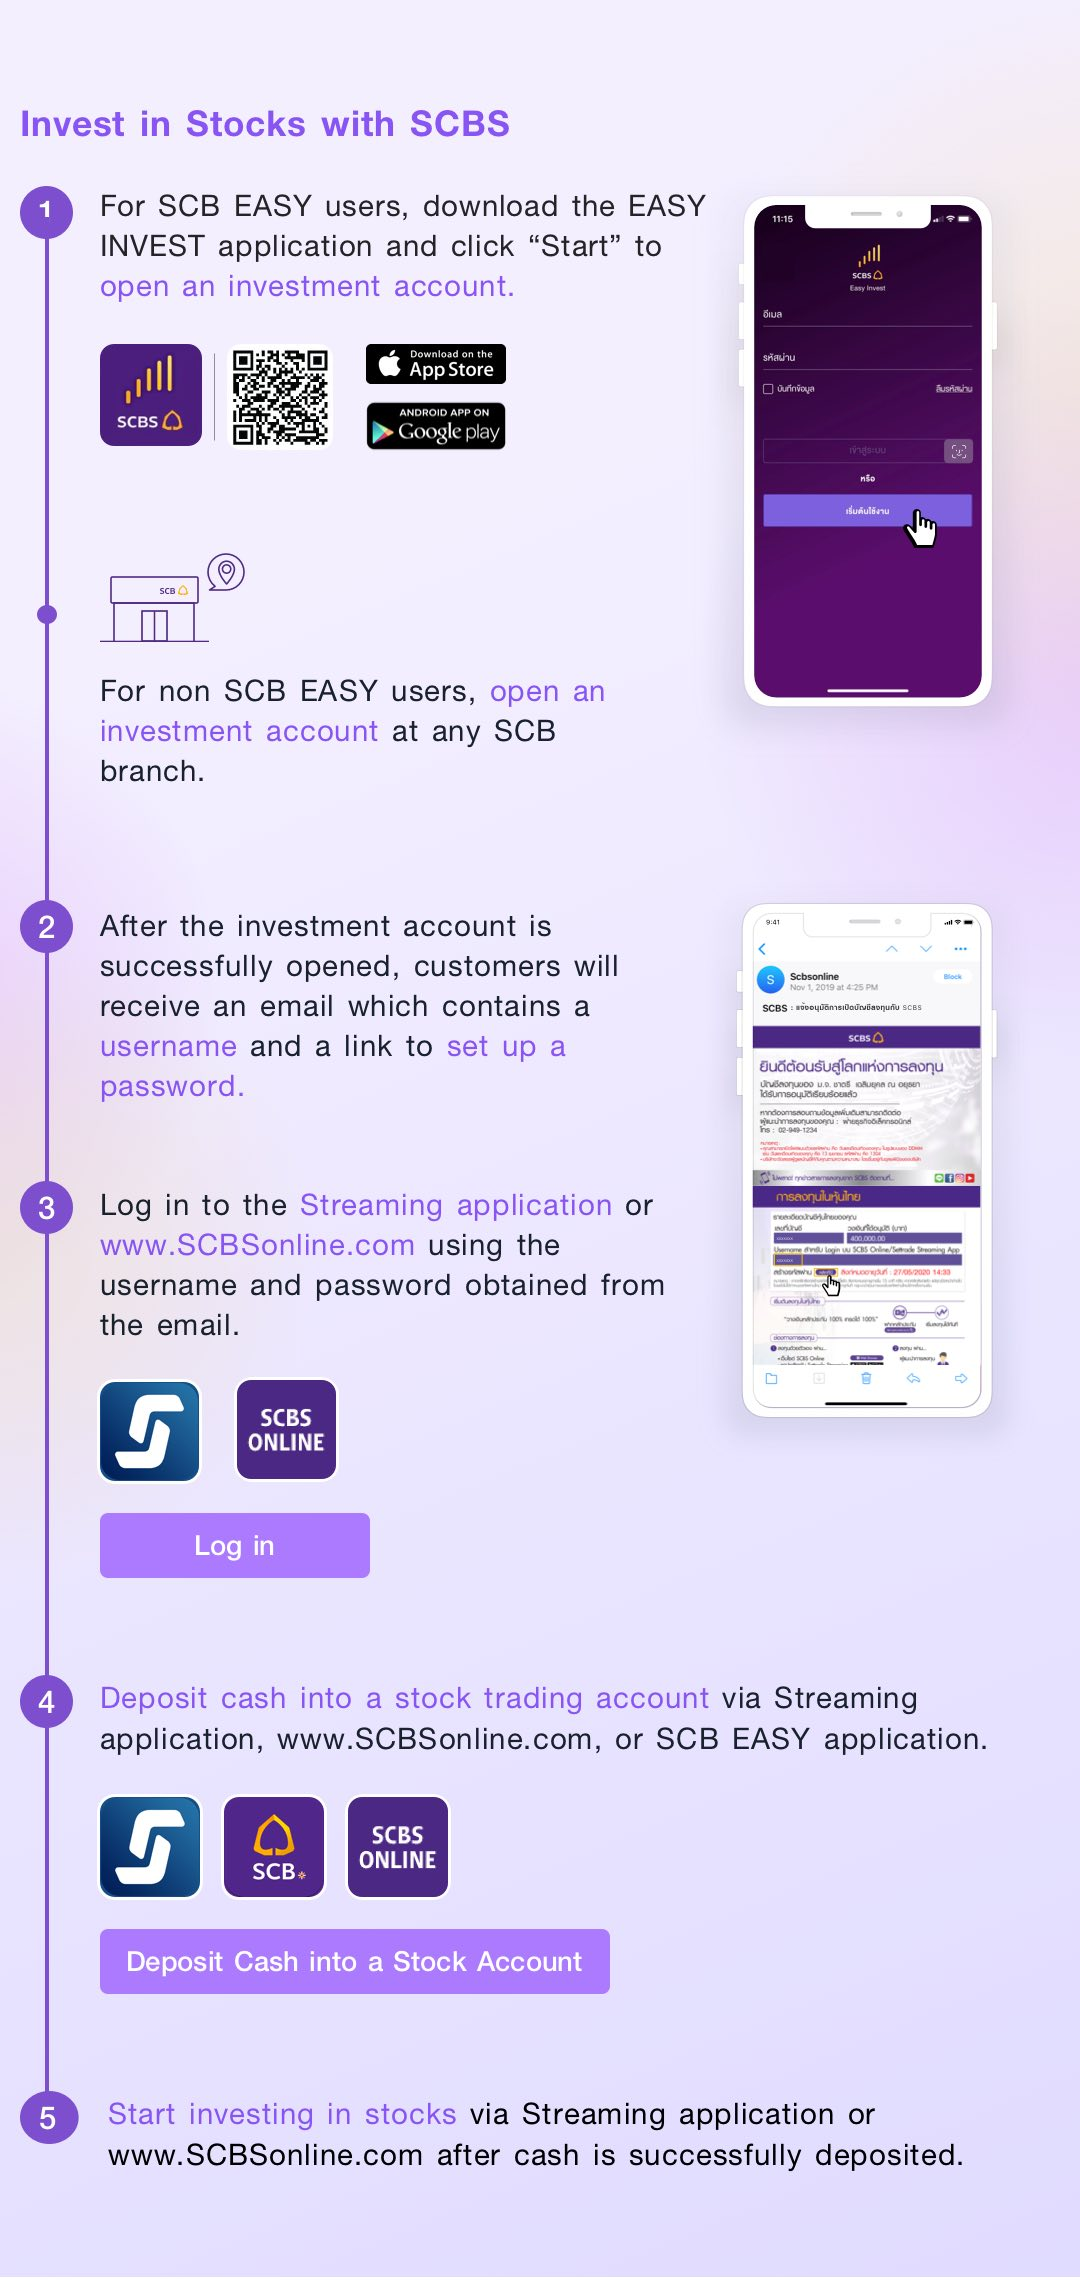 """Invest in Stocks with SCBS. For SCB EASY users, download the EASY INVEST application from App Store or Play Store and click """"Start"""" to open an investment account. For non SCB EASY users, open an investment account at any SCB branch."""